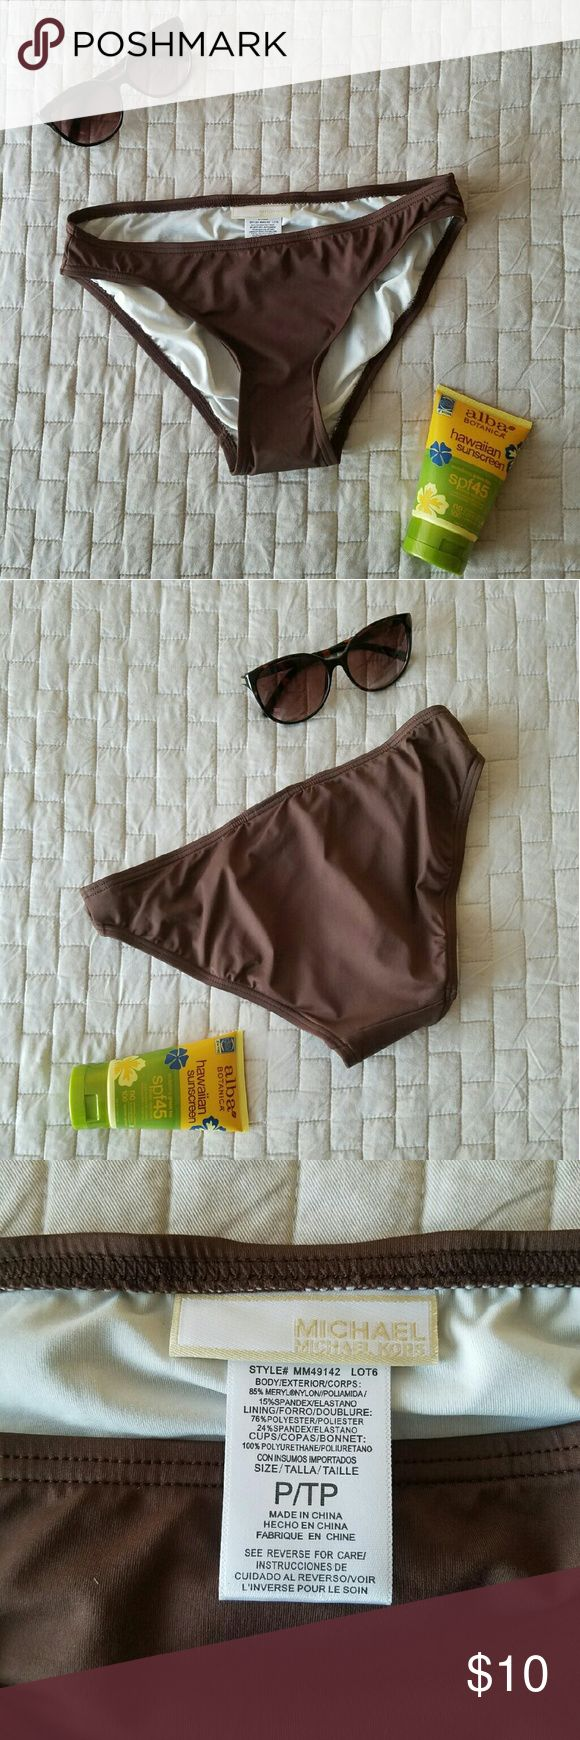 MICHAEL KORS Bikini Bottom Reposh! It didn't fit, and I got a great deal on it too 😭😭😭 Brown MK bikini bottom in Petite. Has not been washed, worn or altered. Hygienic liner still in tact and has not been removed or reattached. I'm a size 26 in pants, this would fit someone that is a size 23/24 at the widest part of the hips. MICHAEL Michael Kors Swim Bikinis